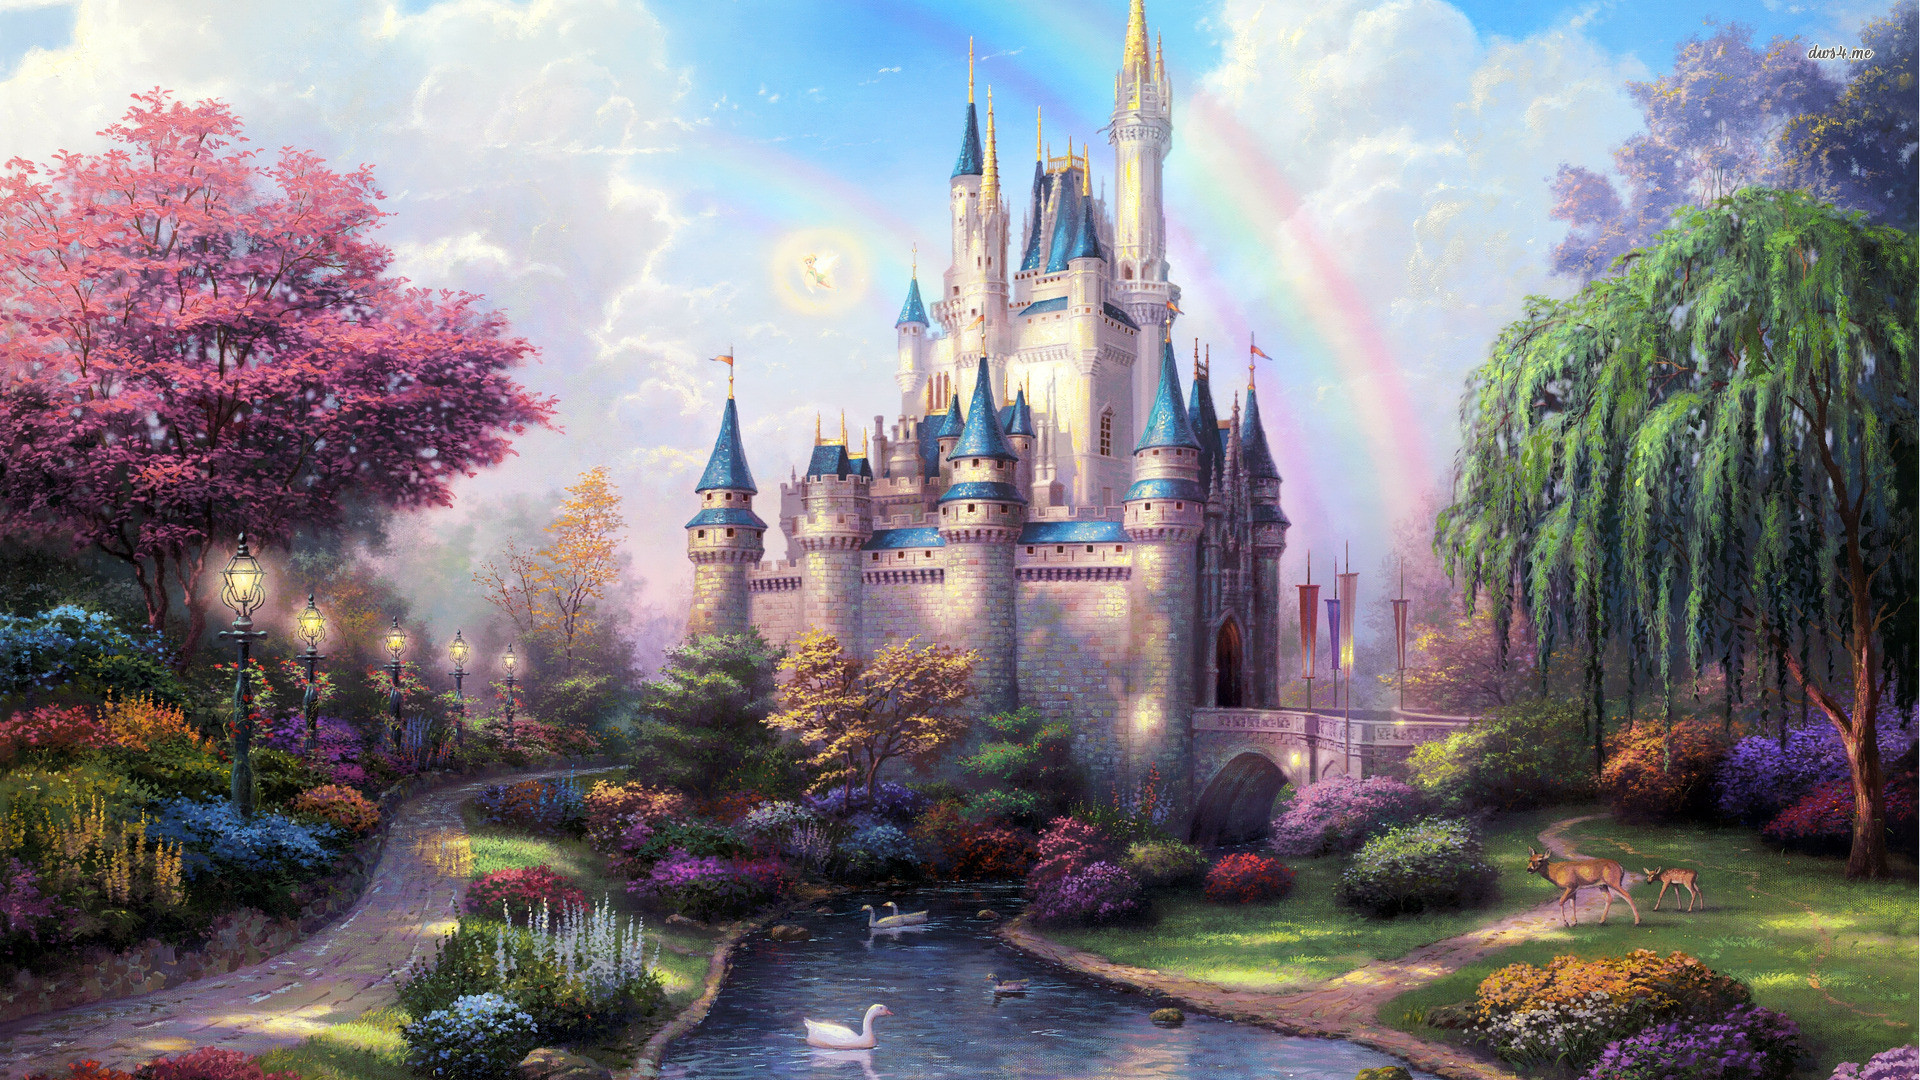 1920x1080 The representation of women in Disney's princess fairy tales – Open Media  Lab